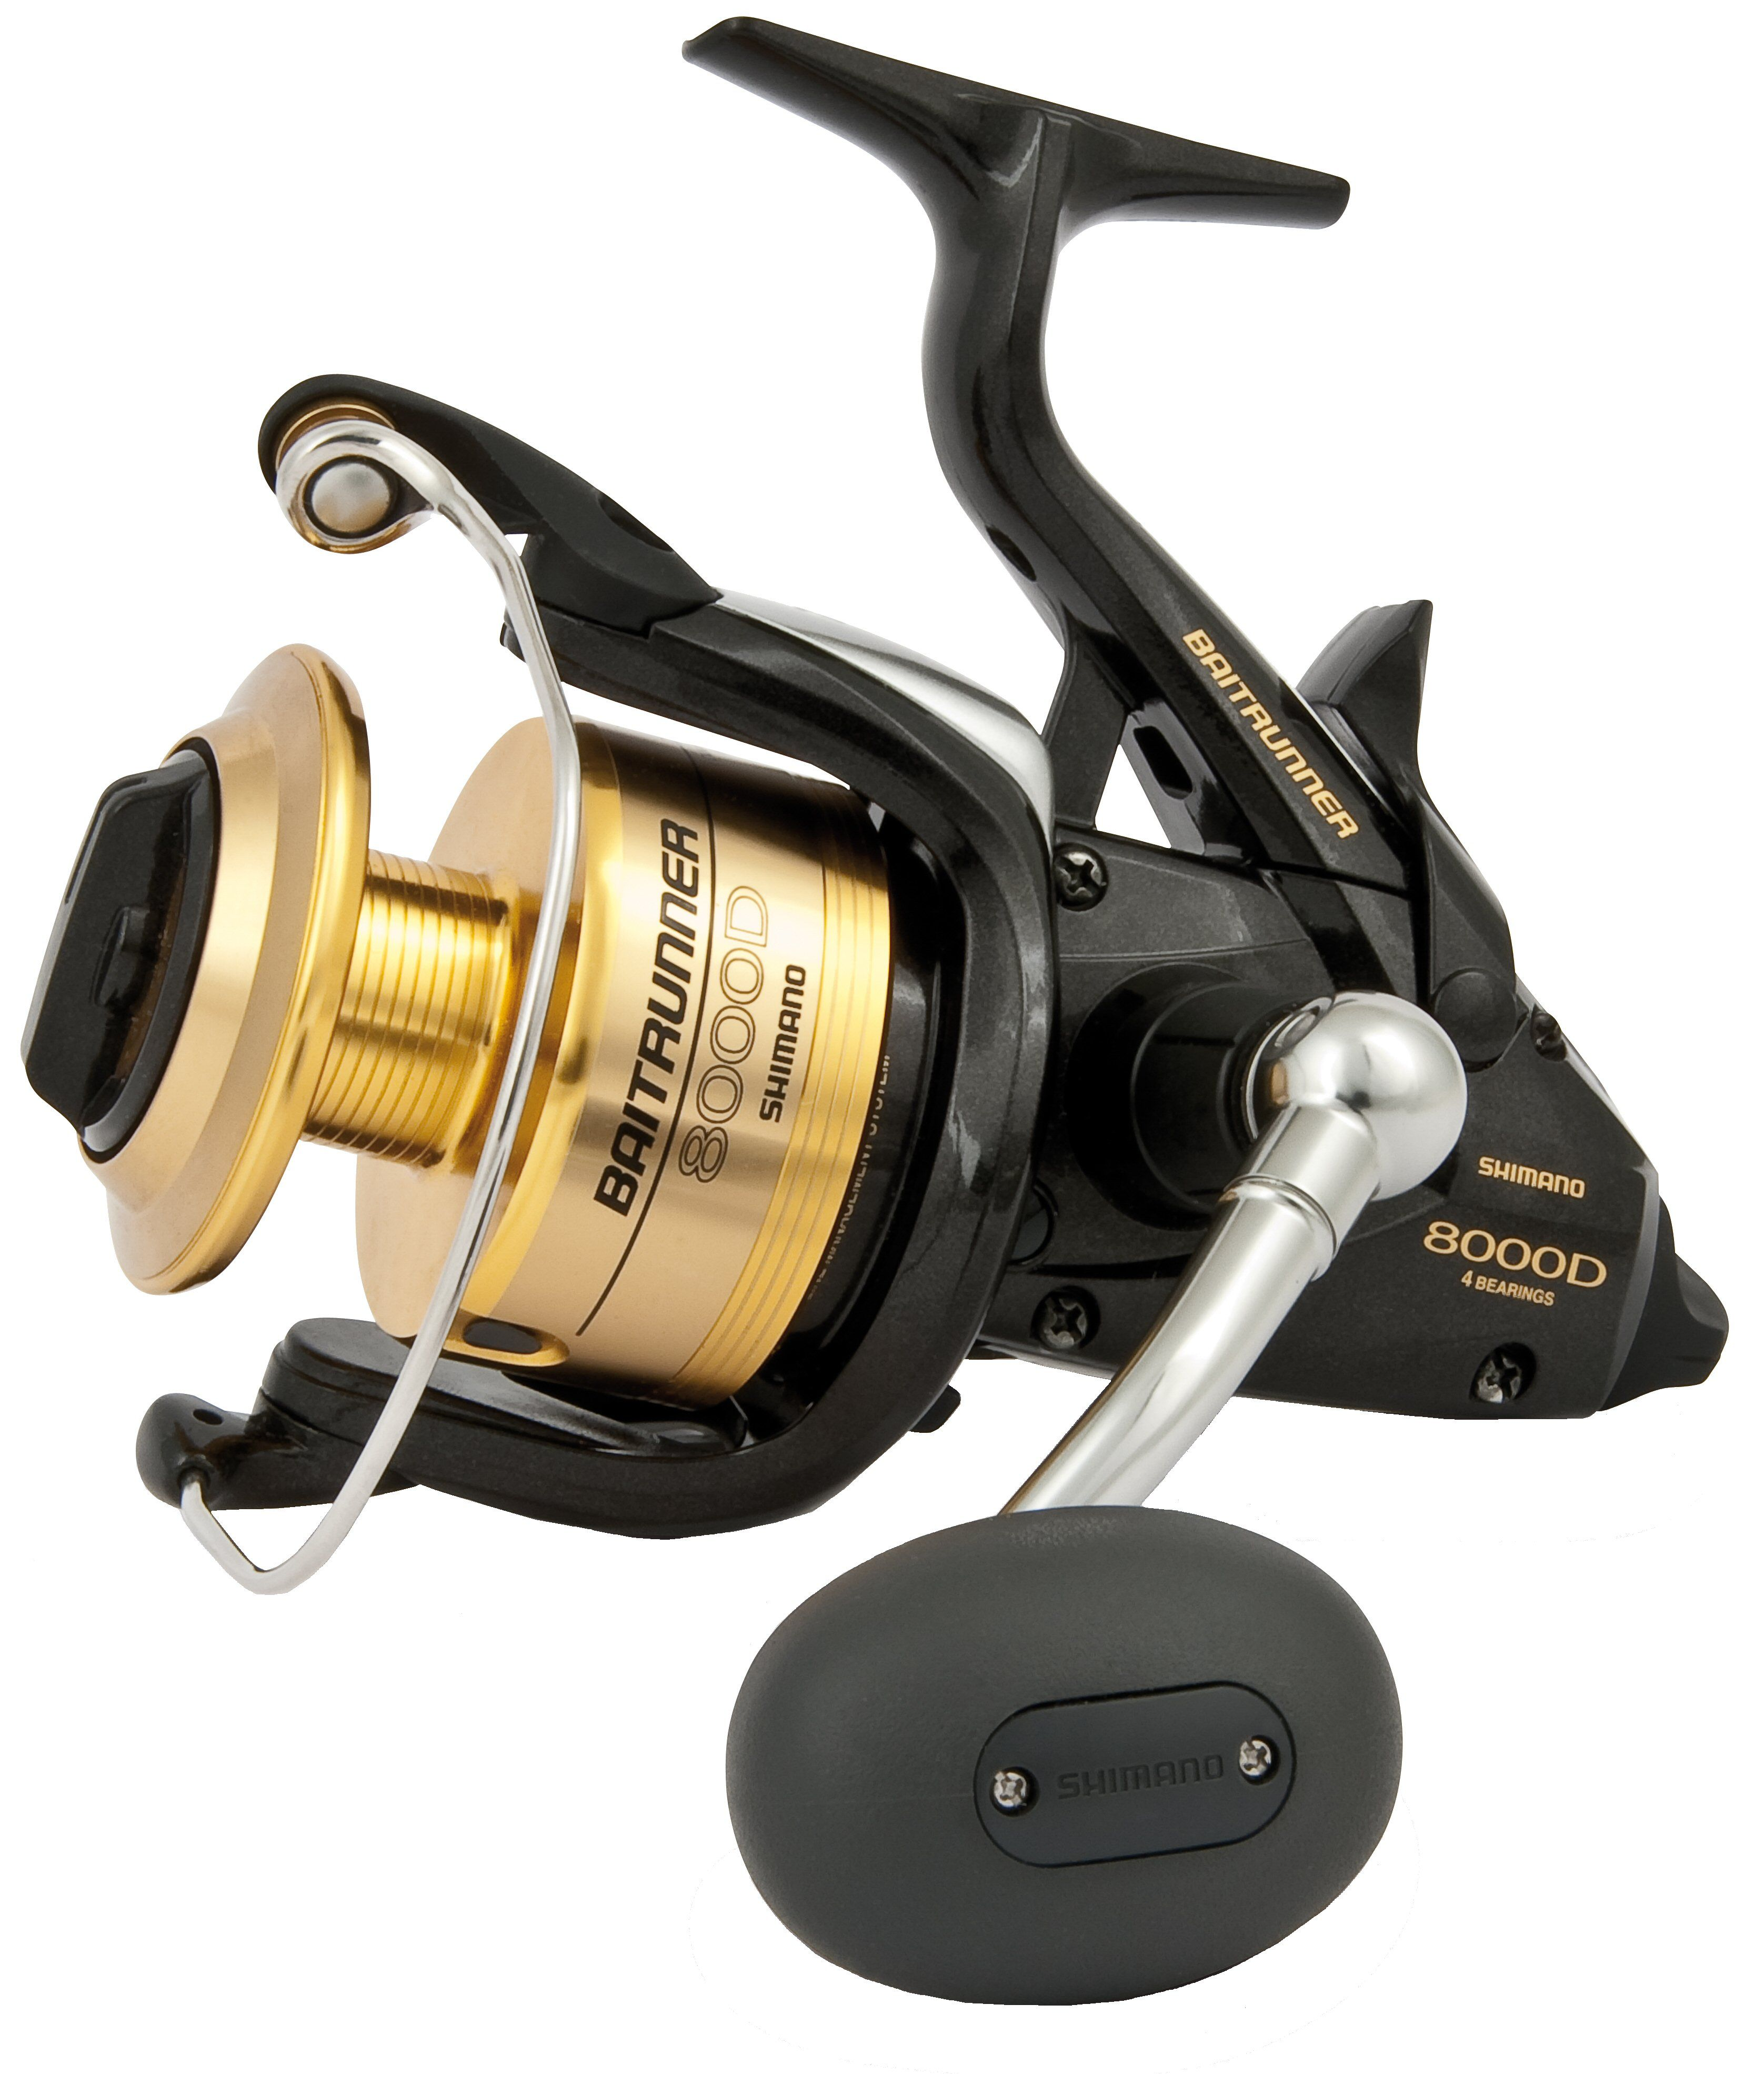 17 best images about fishing reels on pinterest | spinning reels, Reel Combo